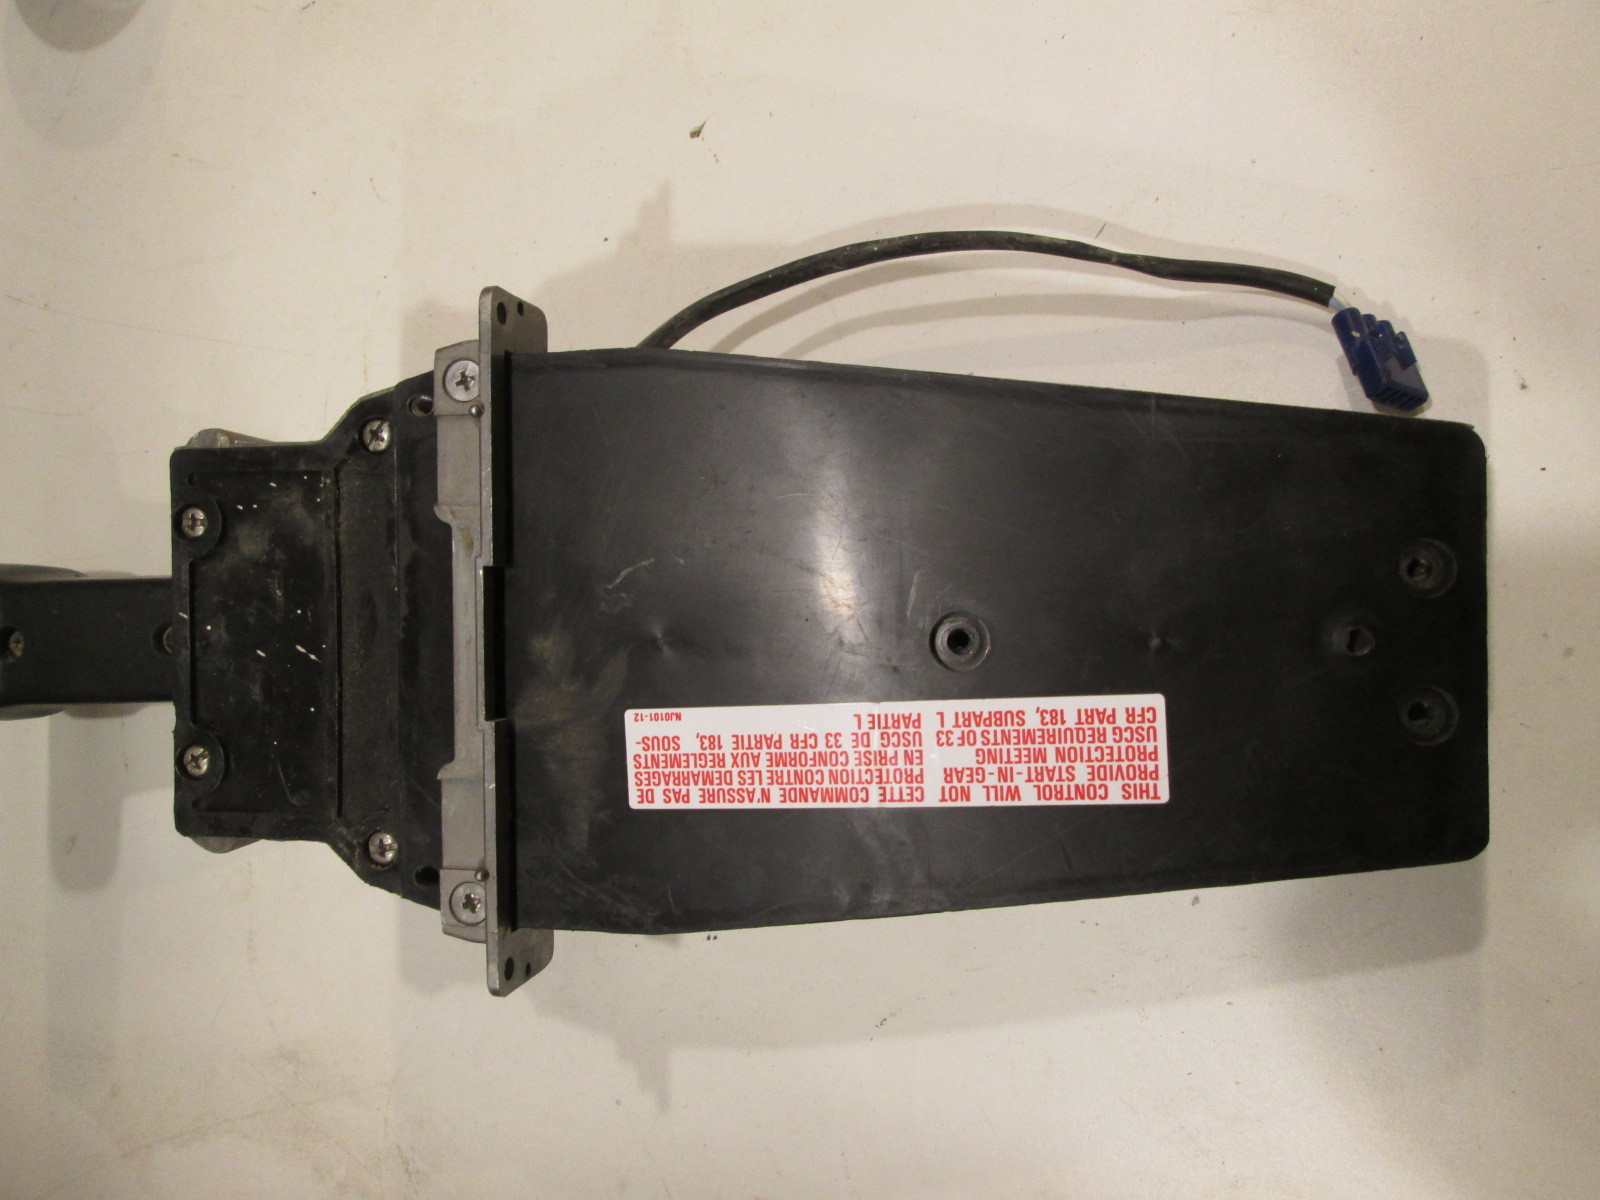 06240-ZW5-U40 HONDA SINGLE ENGINE TOP MOUNT BOAT REMOTE CONTROL FOR PARTS  ONLY